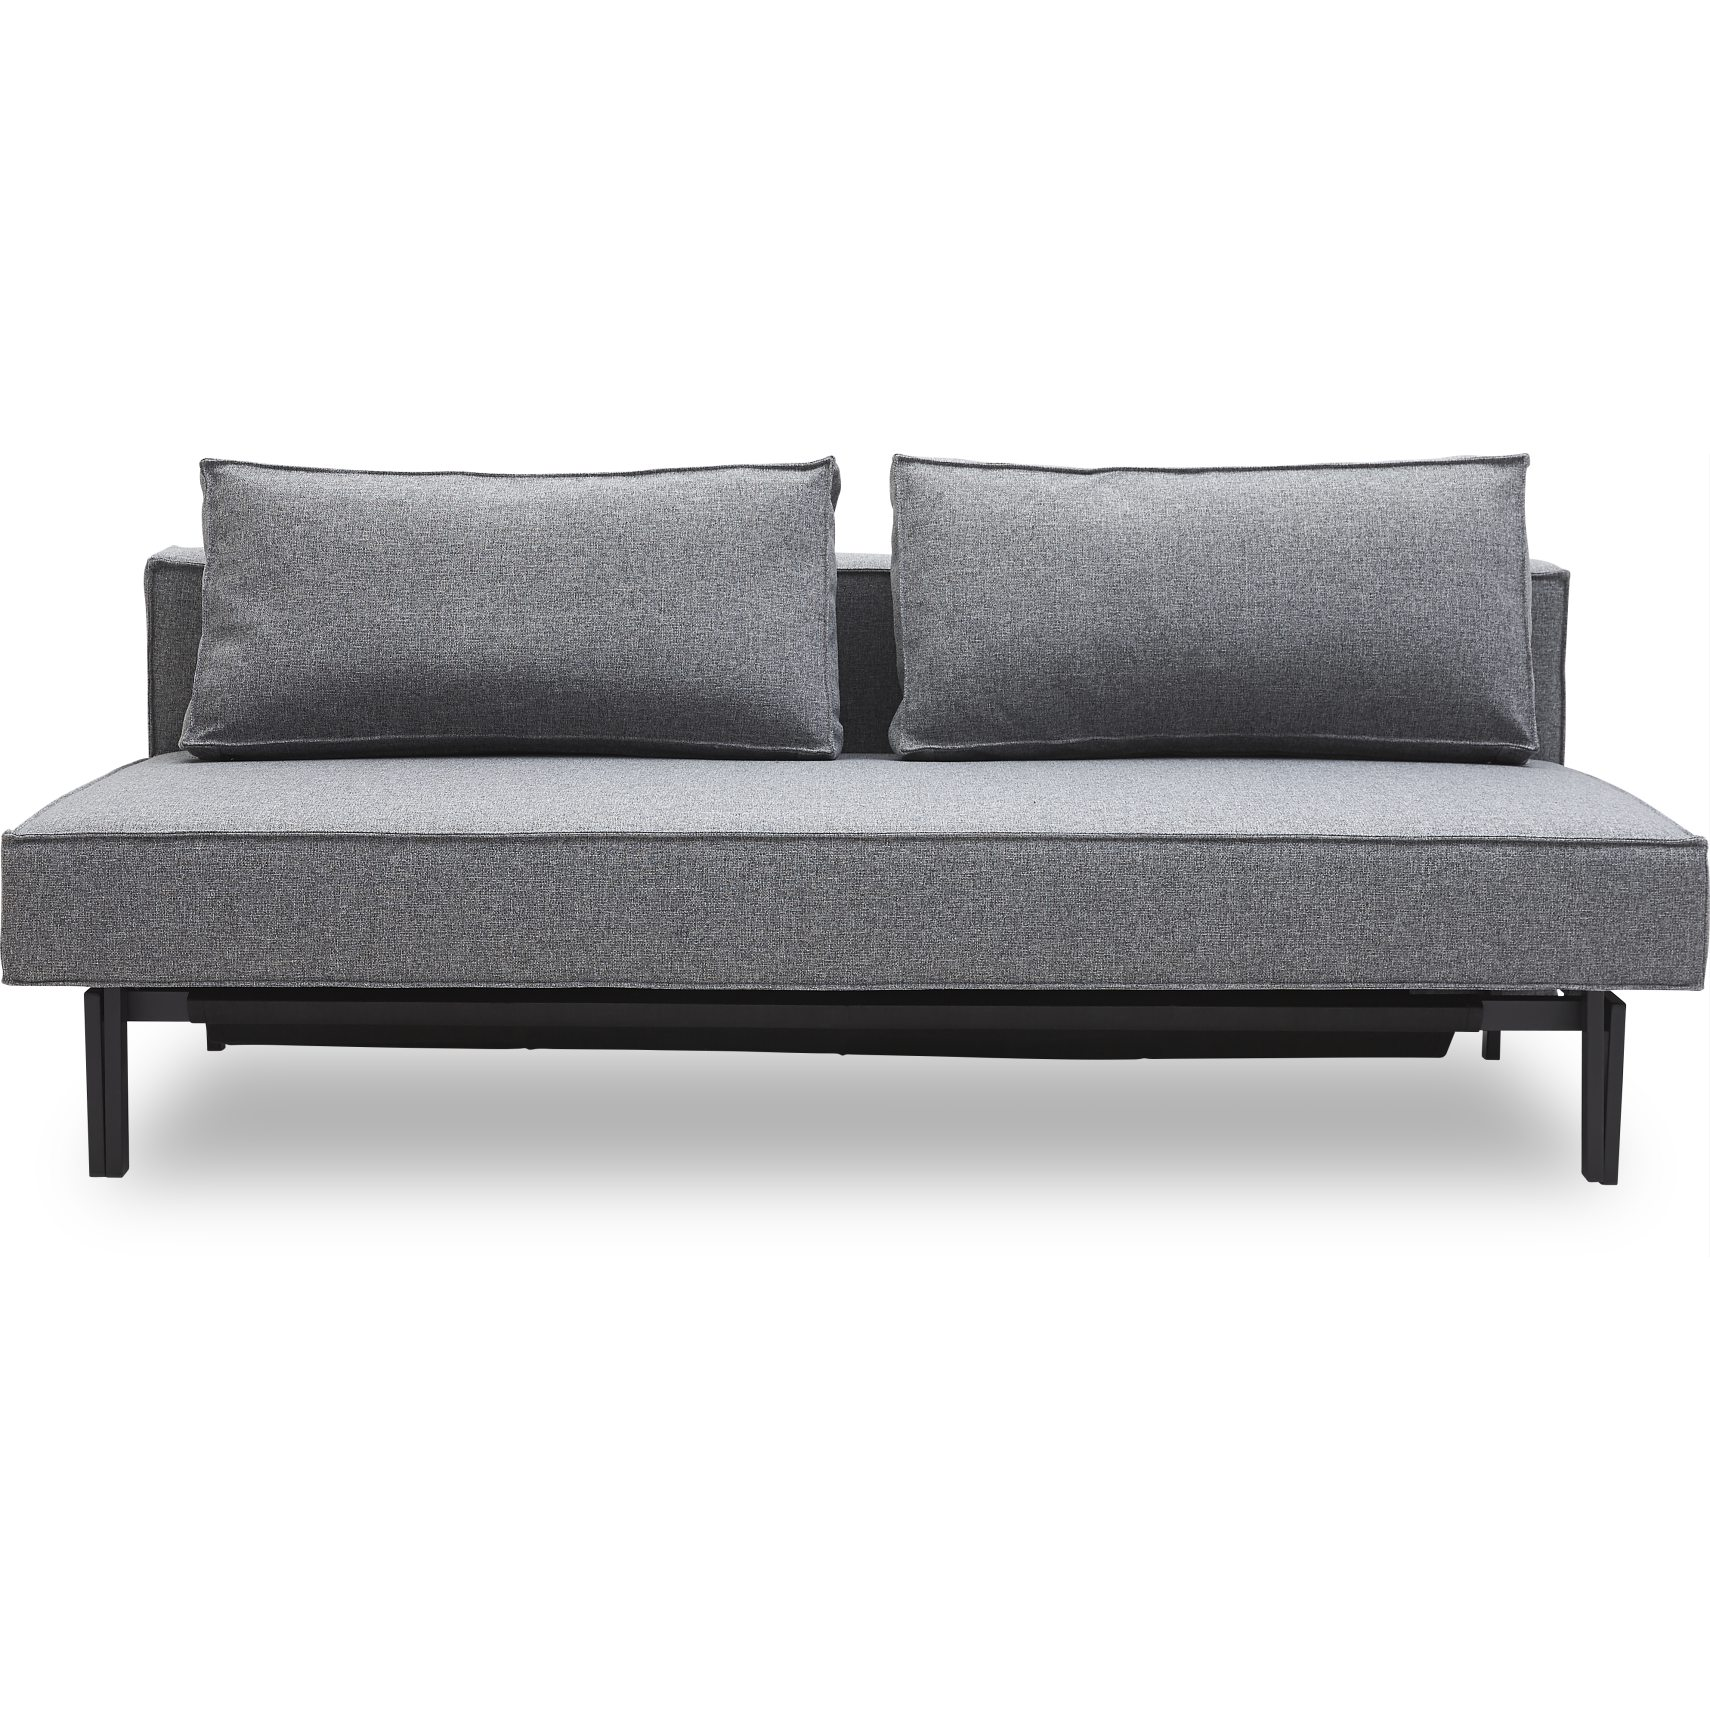 Innovation Living - Sly Sovesofa - Twist 565 Granite og sorte ben